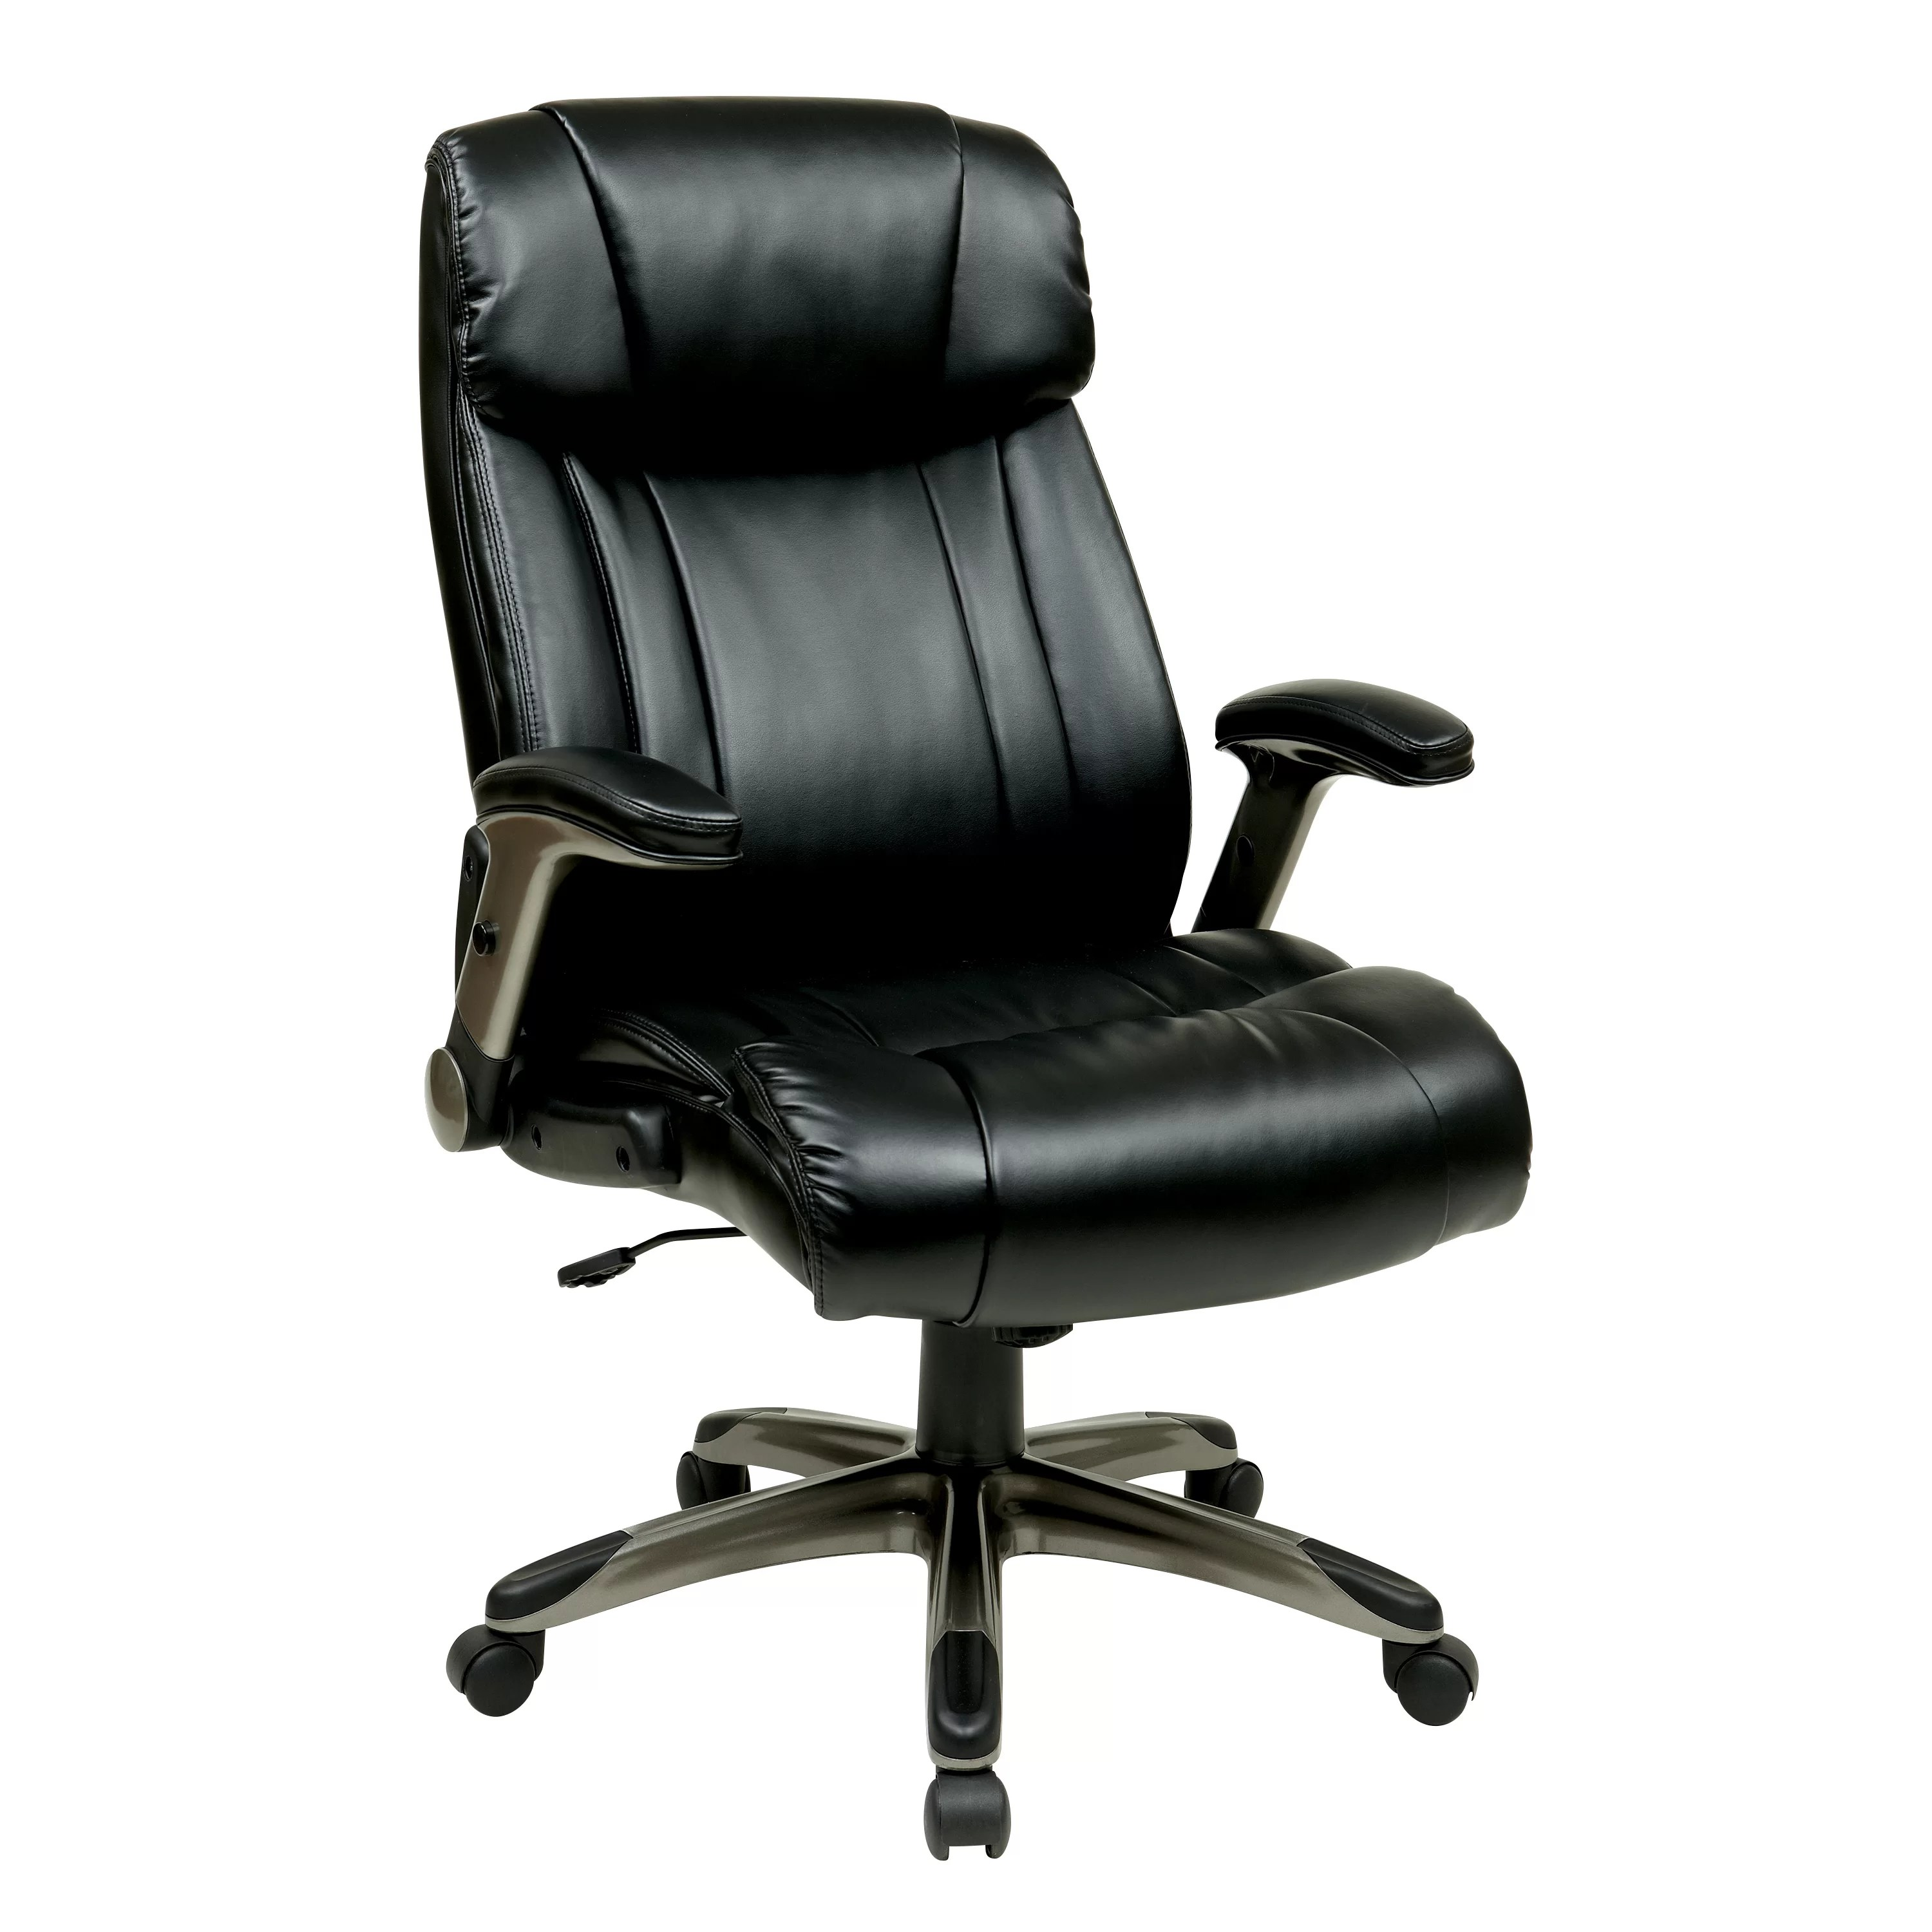 office star chairs material for upholstering high back executive chair and reviews wayfair ca